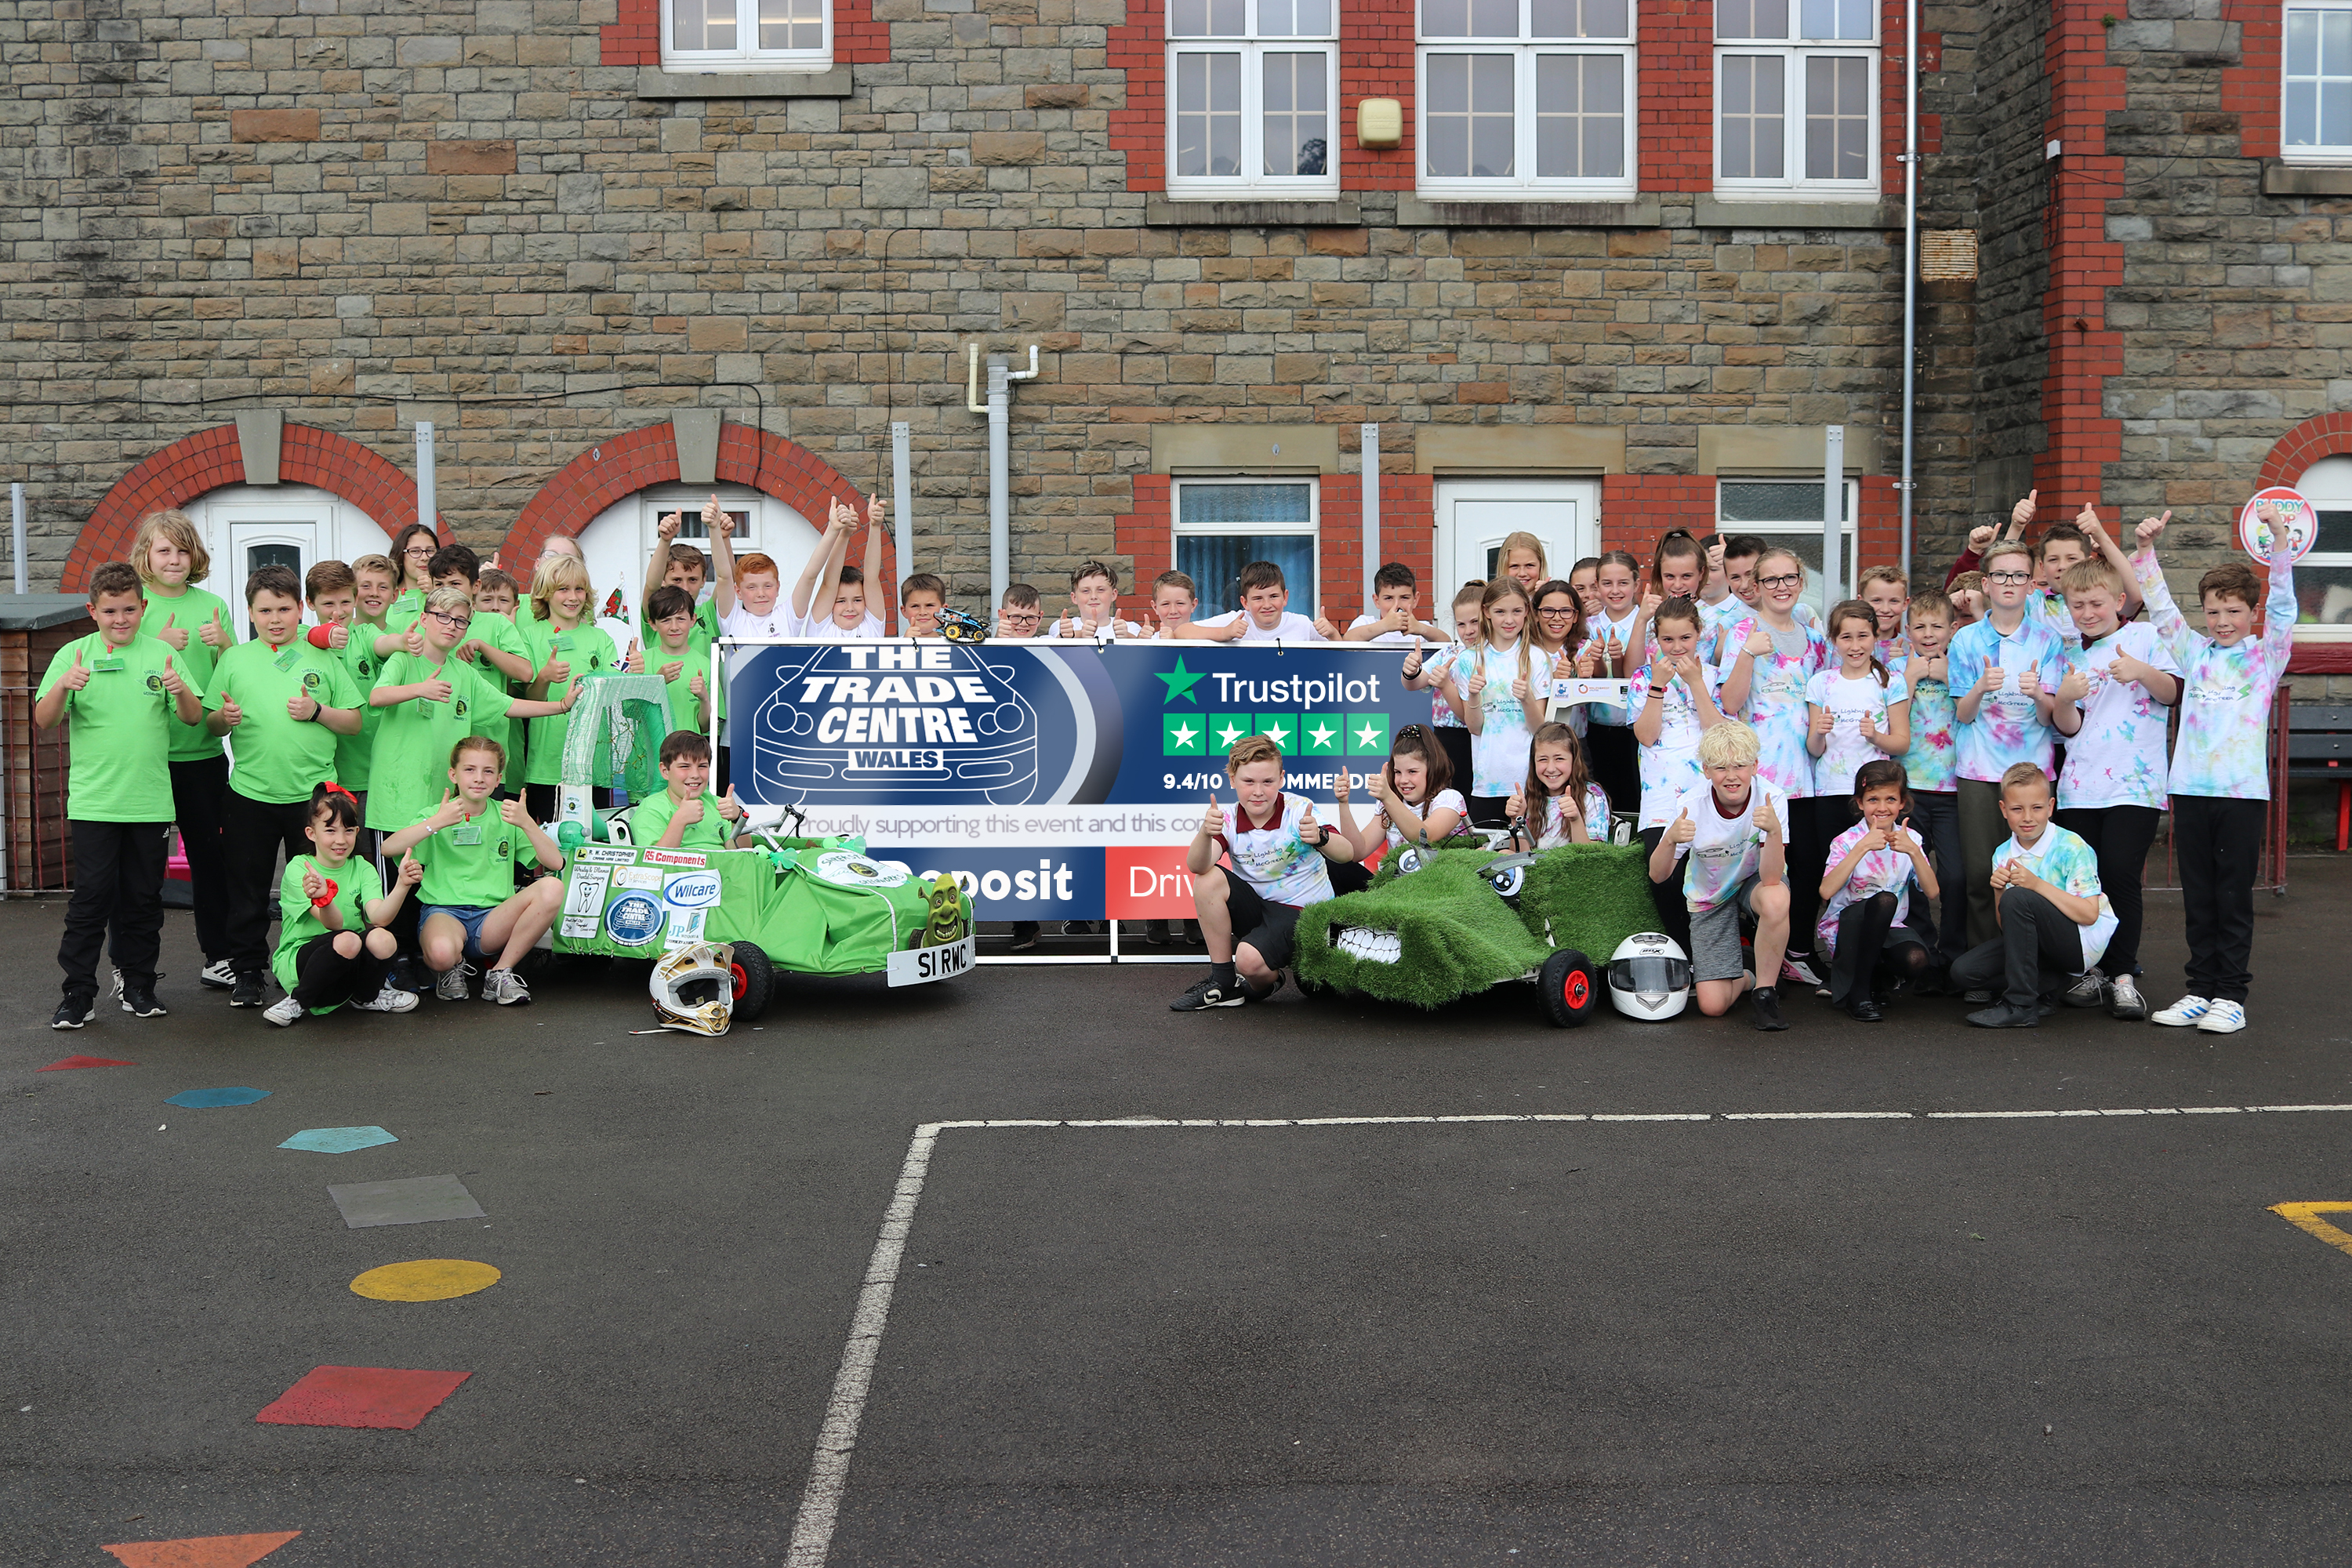 Winning kit car storms ahead thanks to Trade Centre Wales sponsorship image